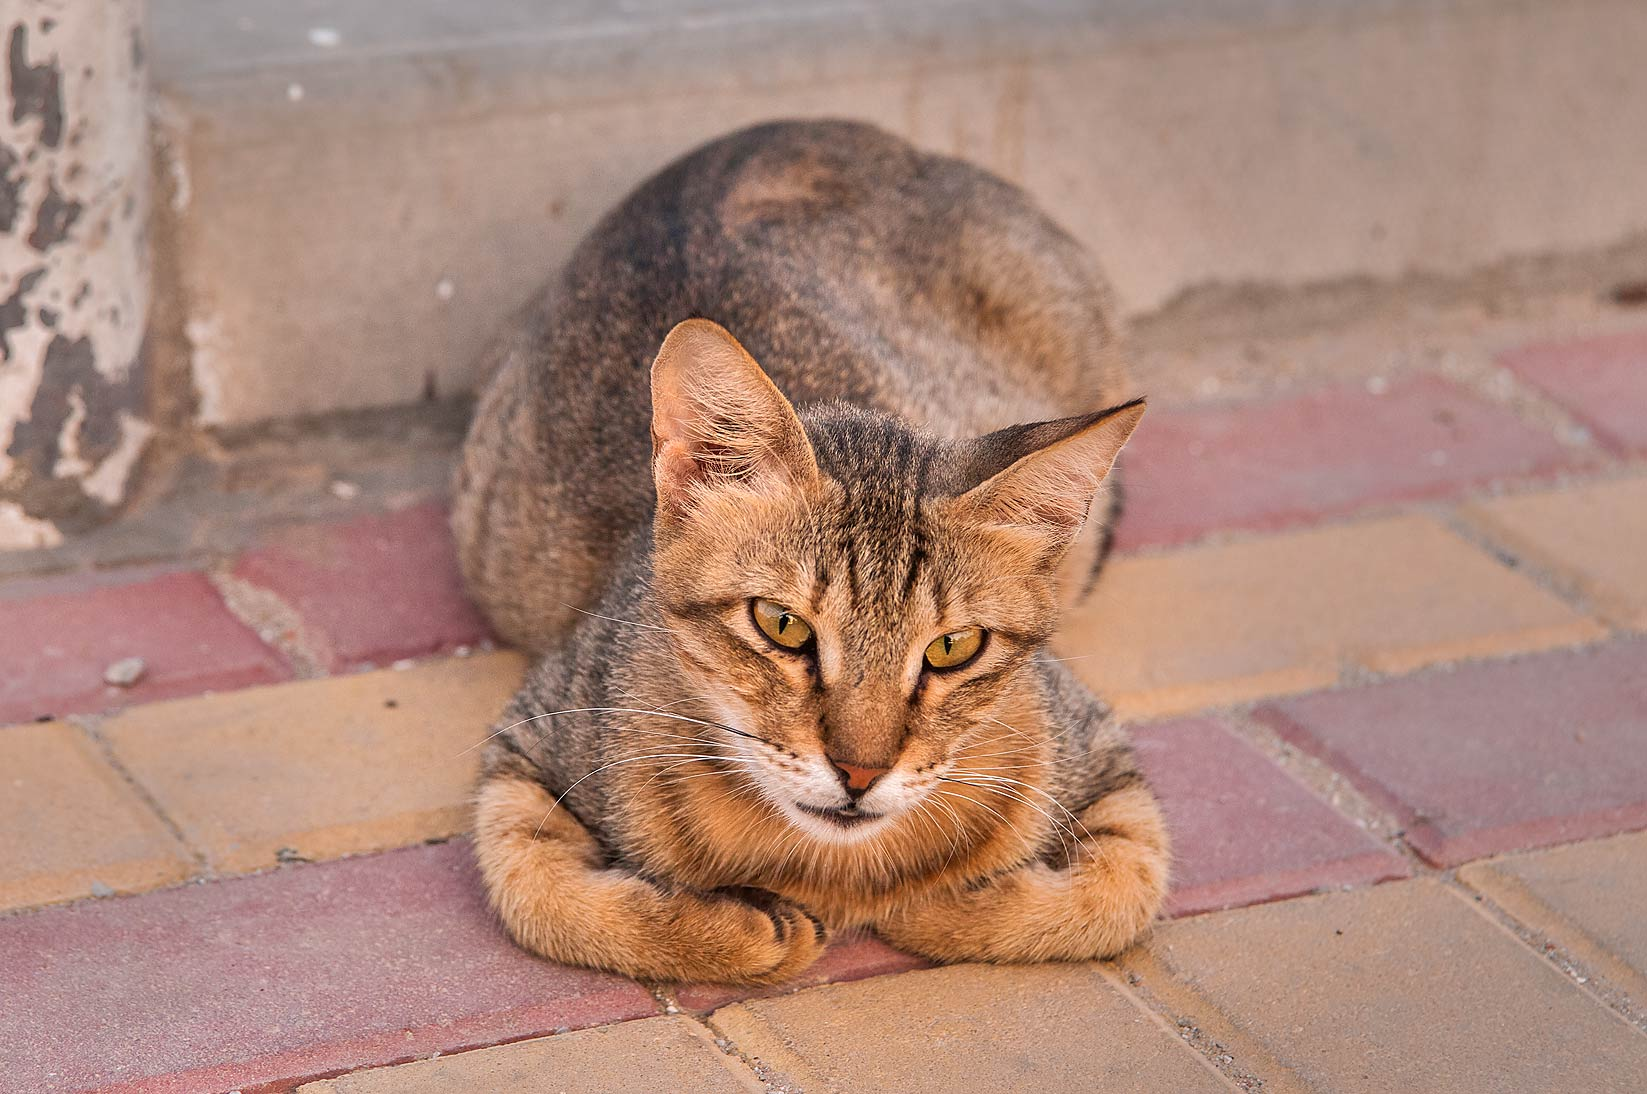 Tabby cat sitting near Wholesale Fish Market in Abu Hamour. Doha, Qatar